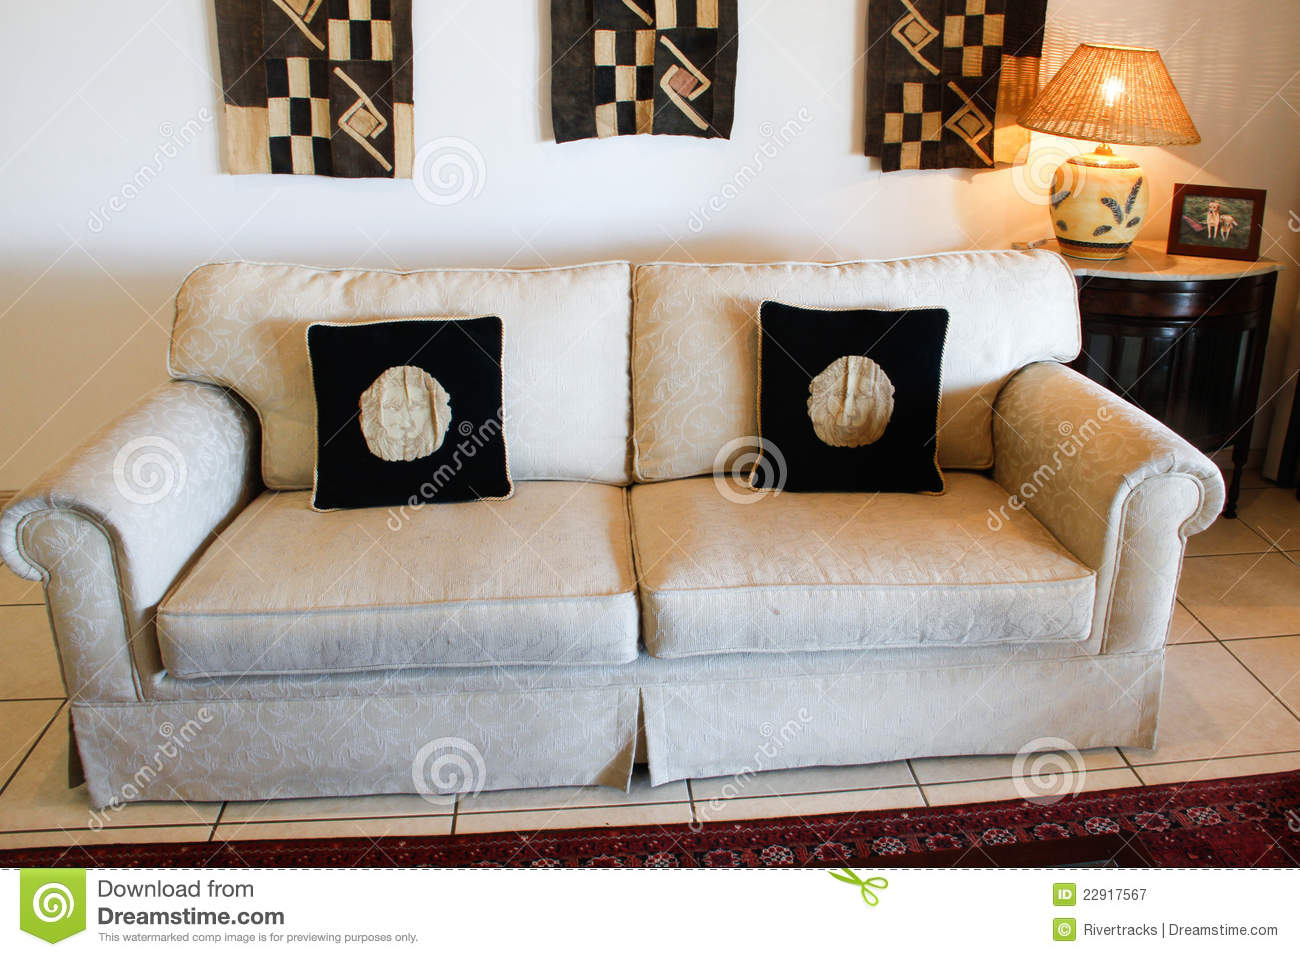 White Couch With Black Cushions Stock Image Image Of - Sofa Cushions Black And White